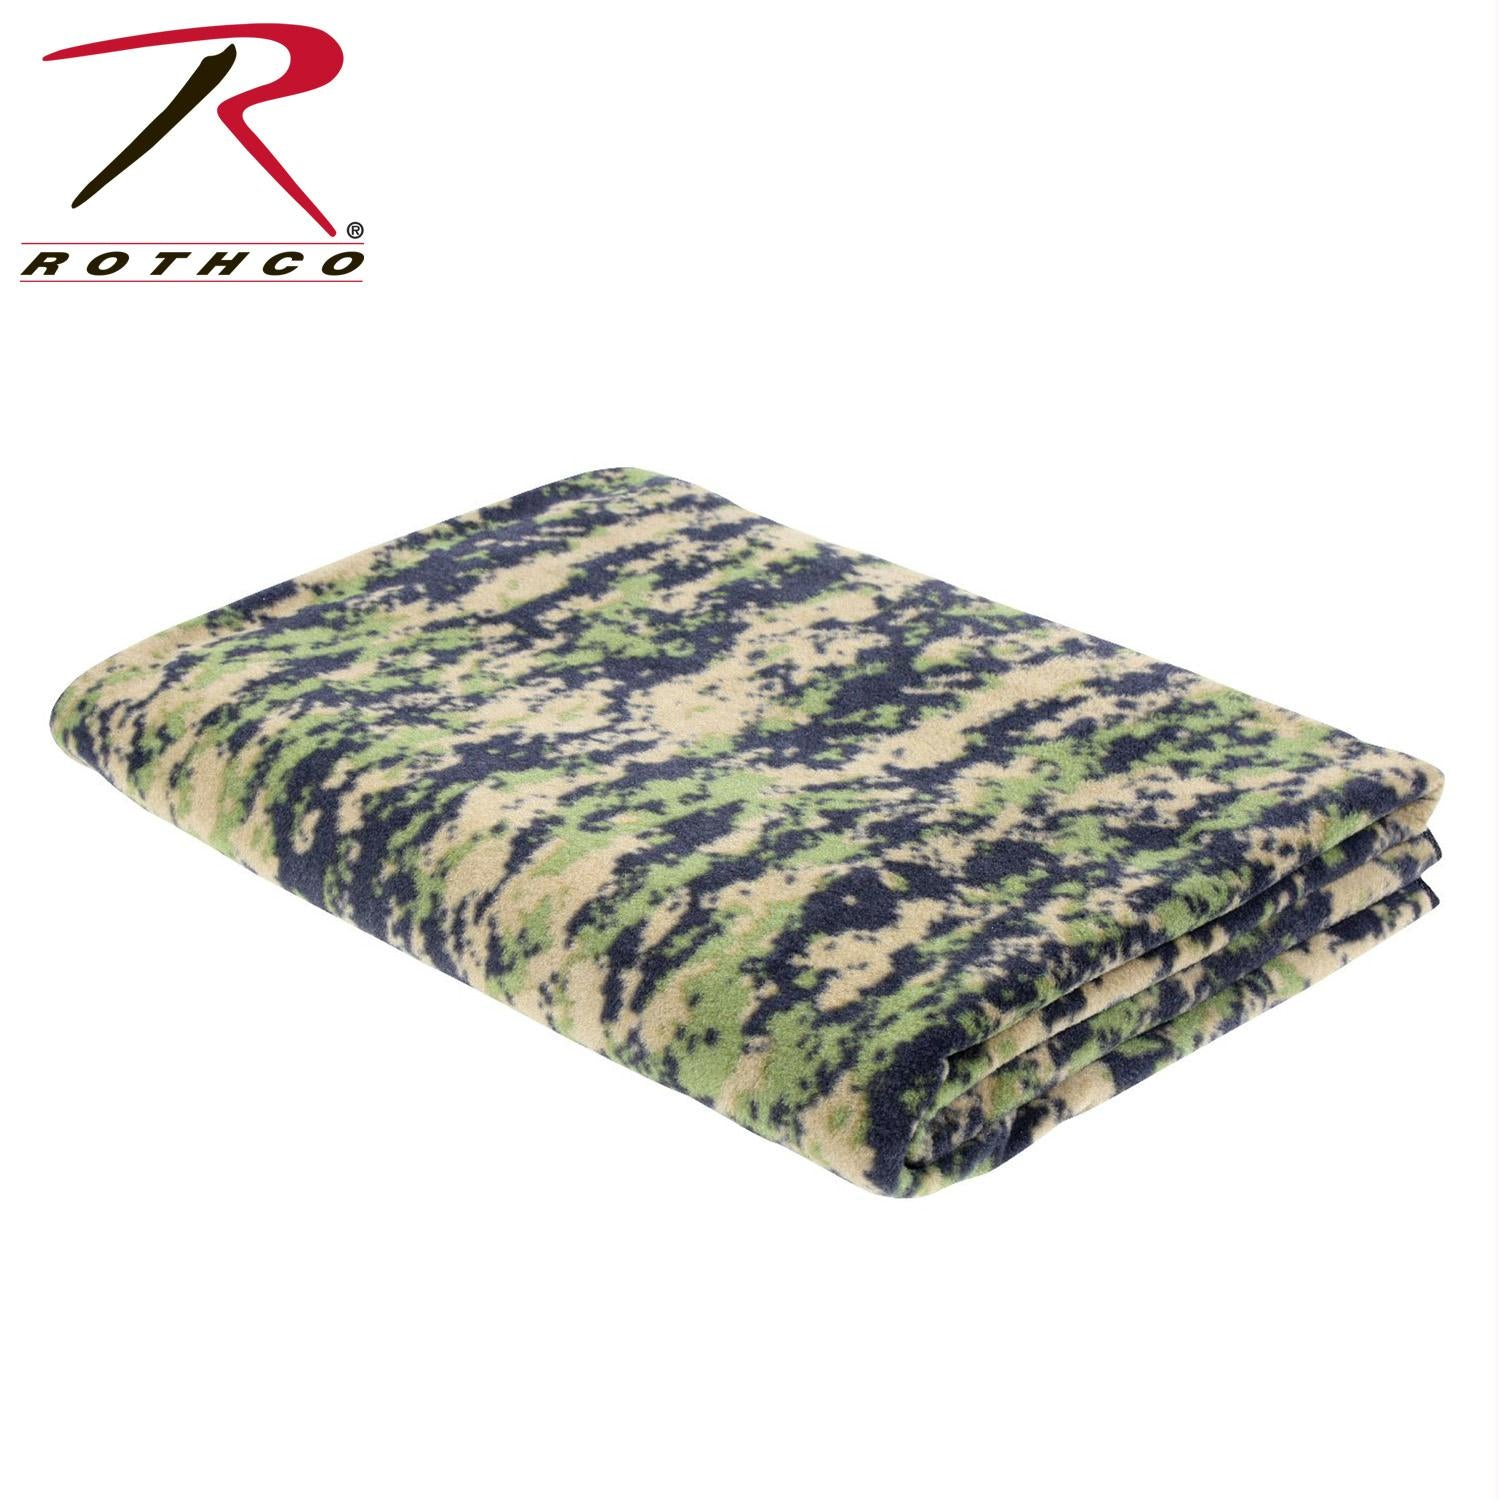 Rothco Camo Fleece Blanket - Woodland Digital Camo